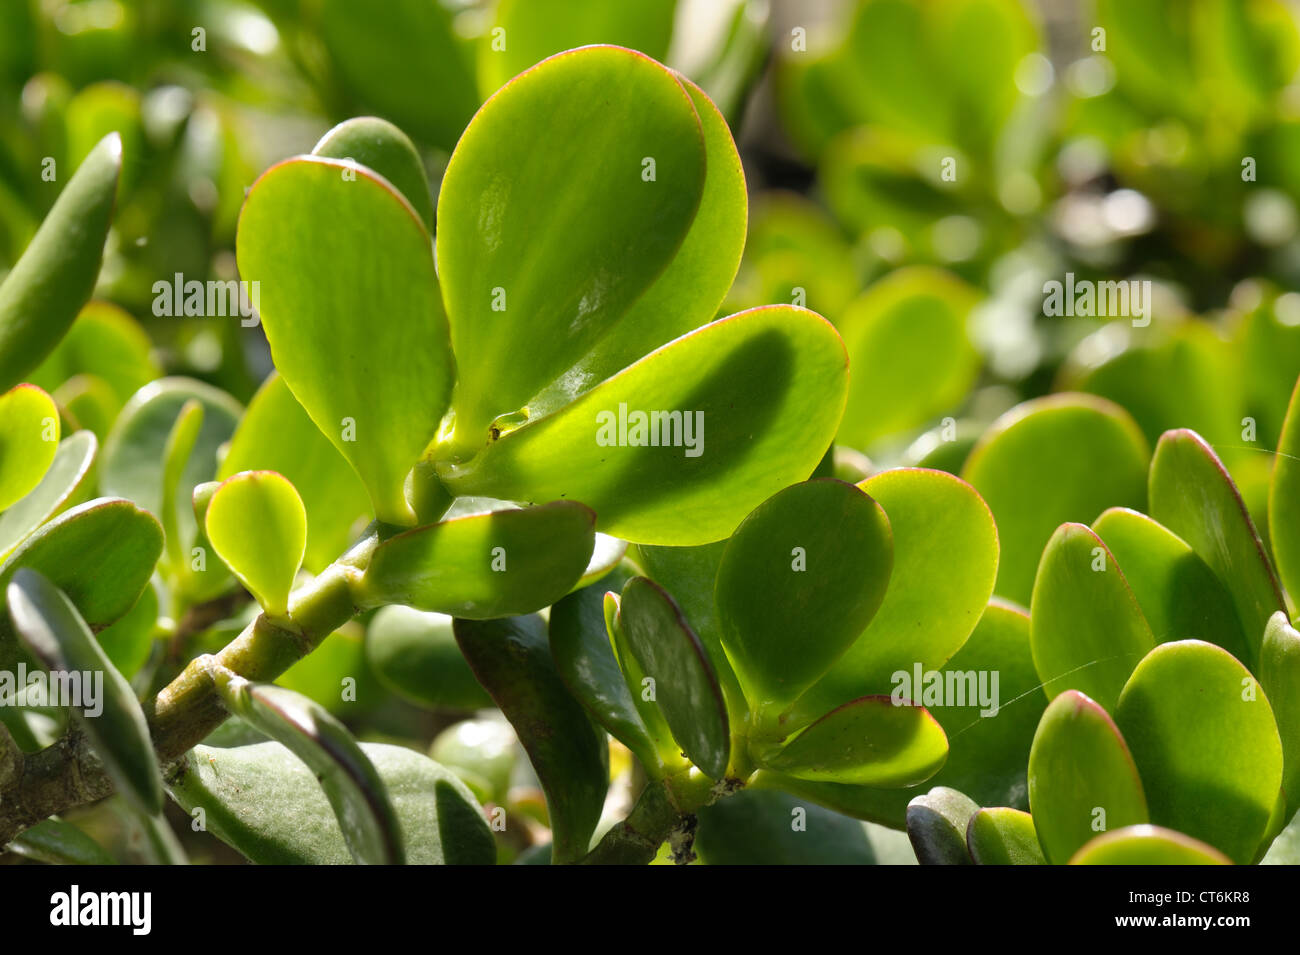 sukkulente bl tter einen geld baum oder efeutute crassula ovata stockfoto bild 49319740 alamy. Black Bedroom Furniture Sets. Home Design Ideas